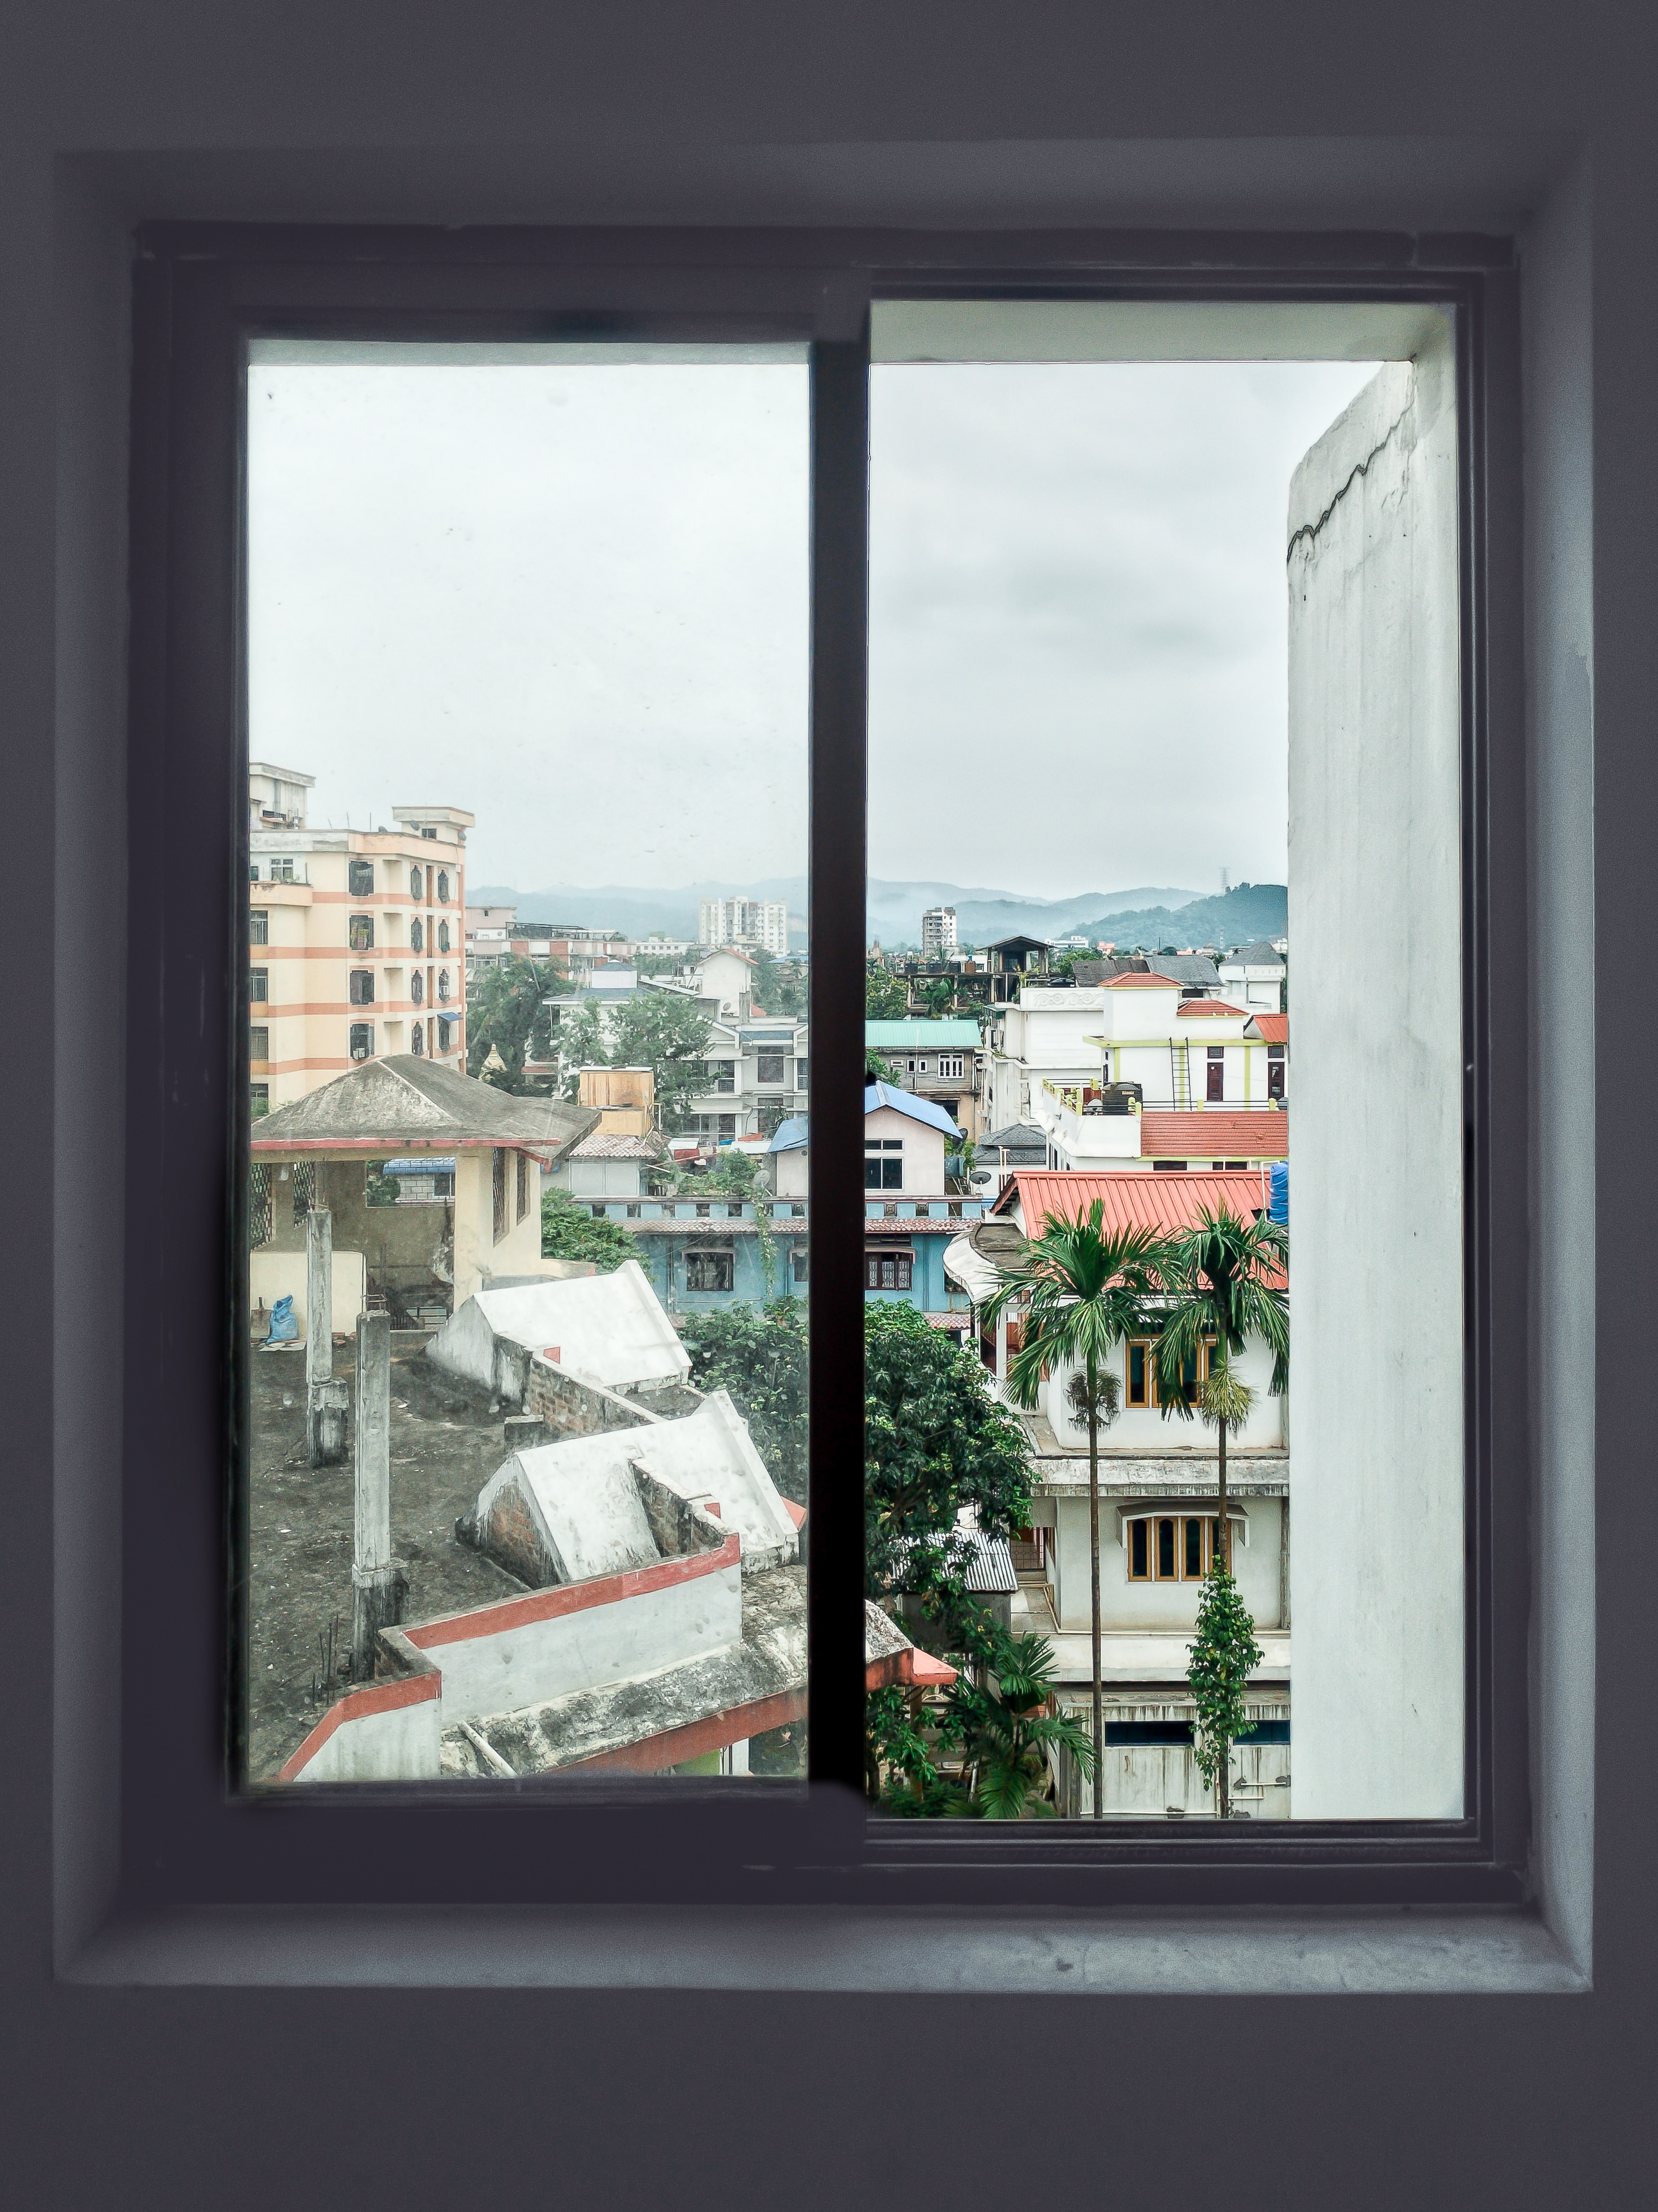 a photo of a view from the window, with the window serving as a frame within a frame in the photo